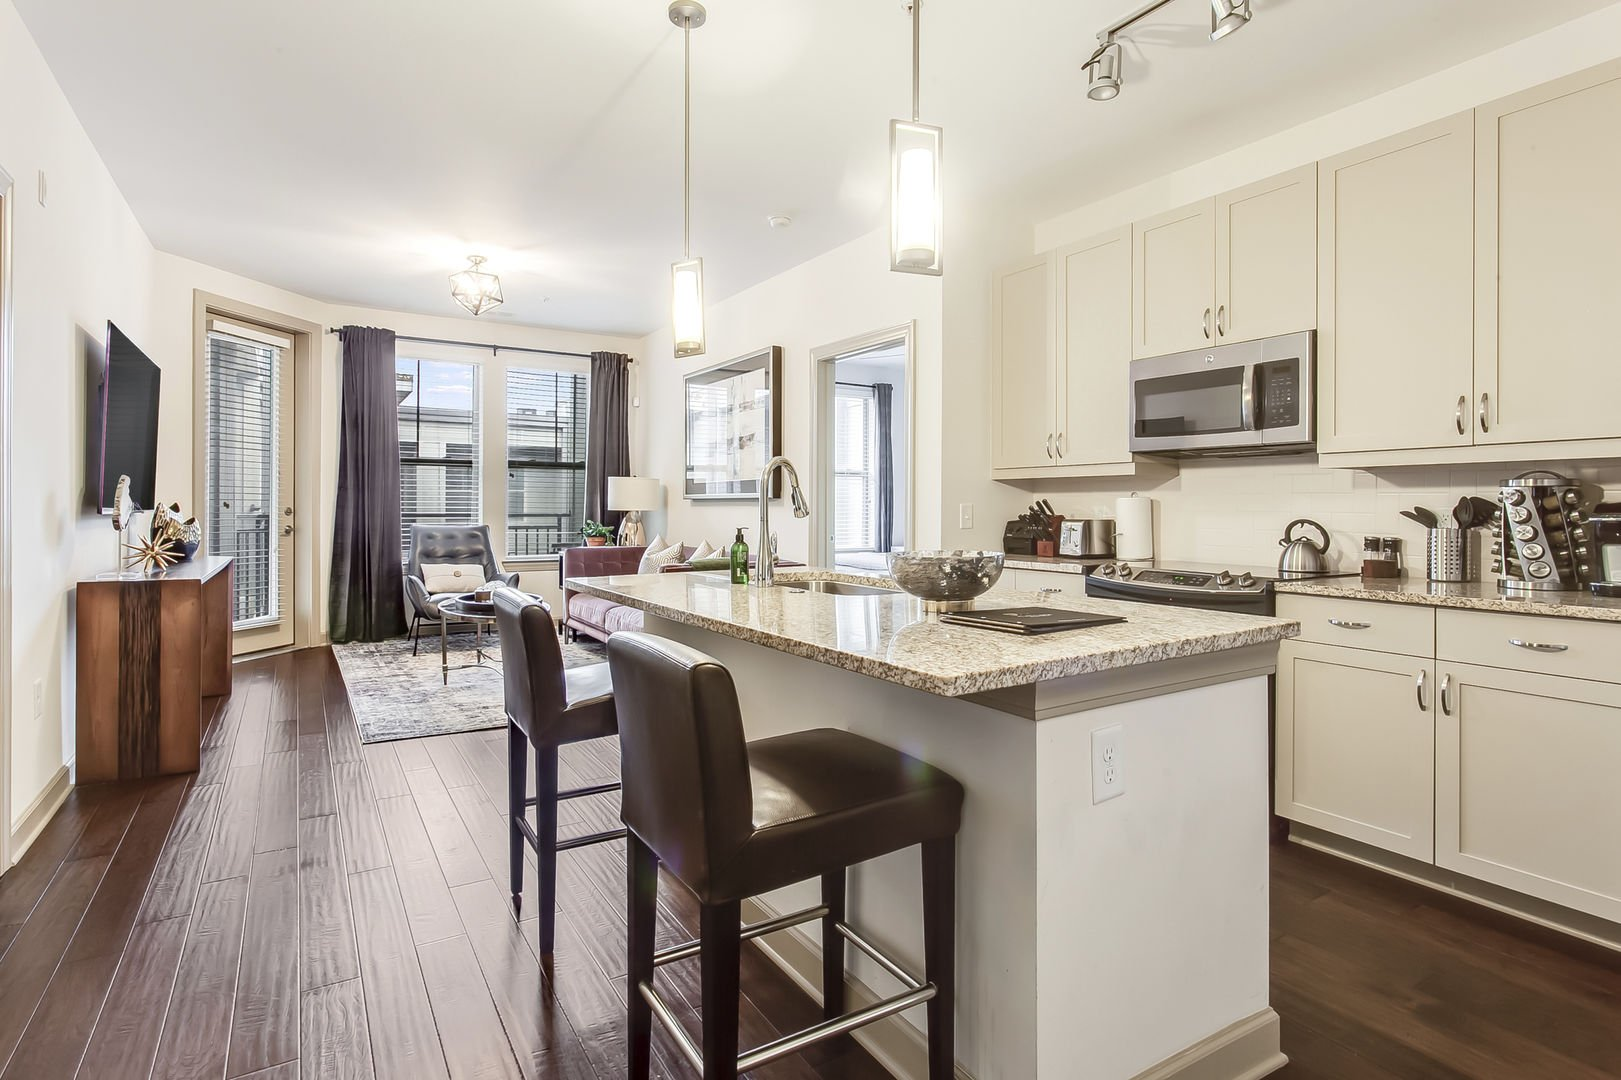 This Atlanta Rental Apartment has a kitchen area with bar-style seating